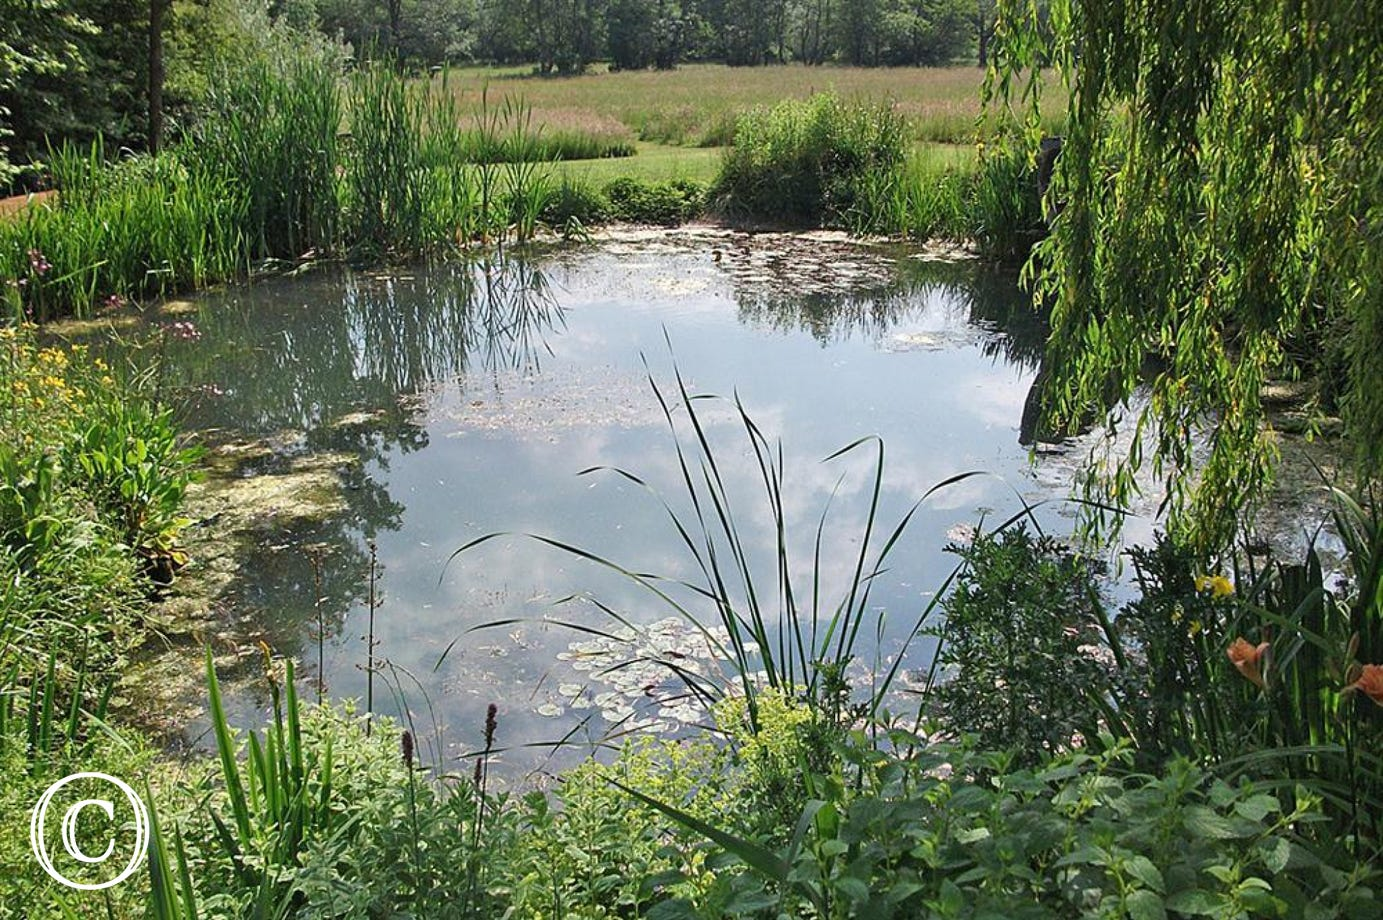 Read a book or write a book by this tranquil pond situated in the grounds for The Stables.